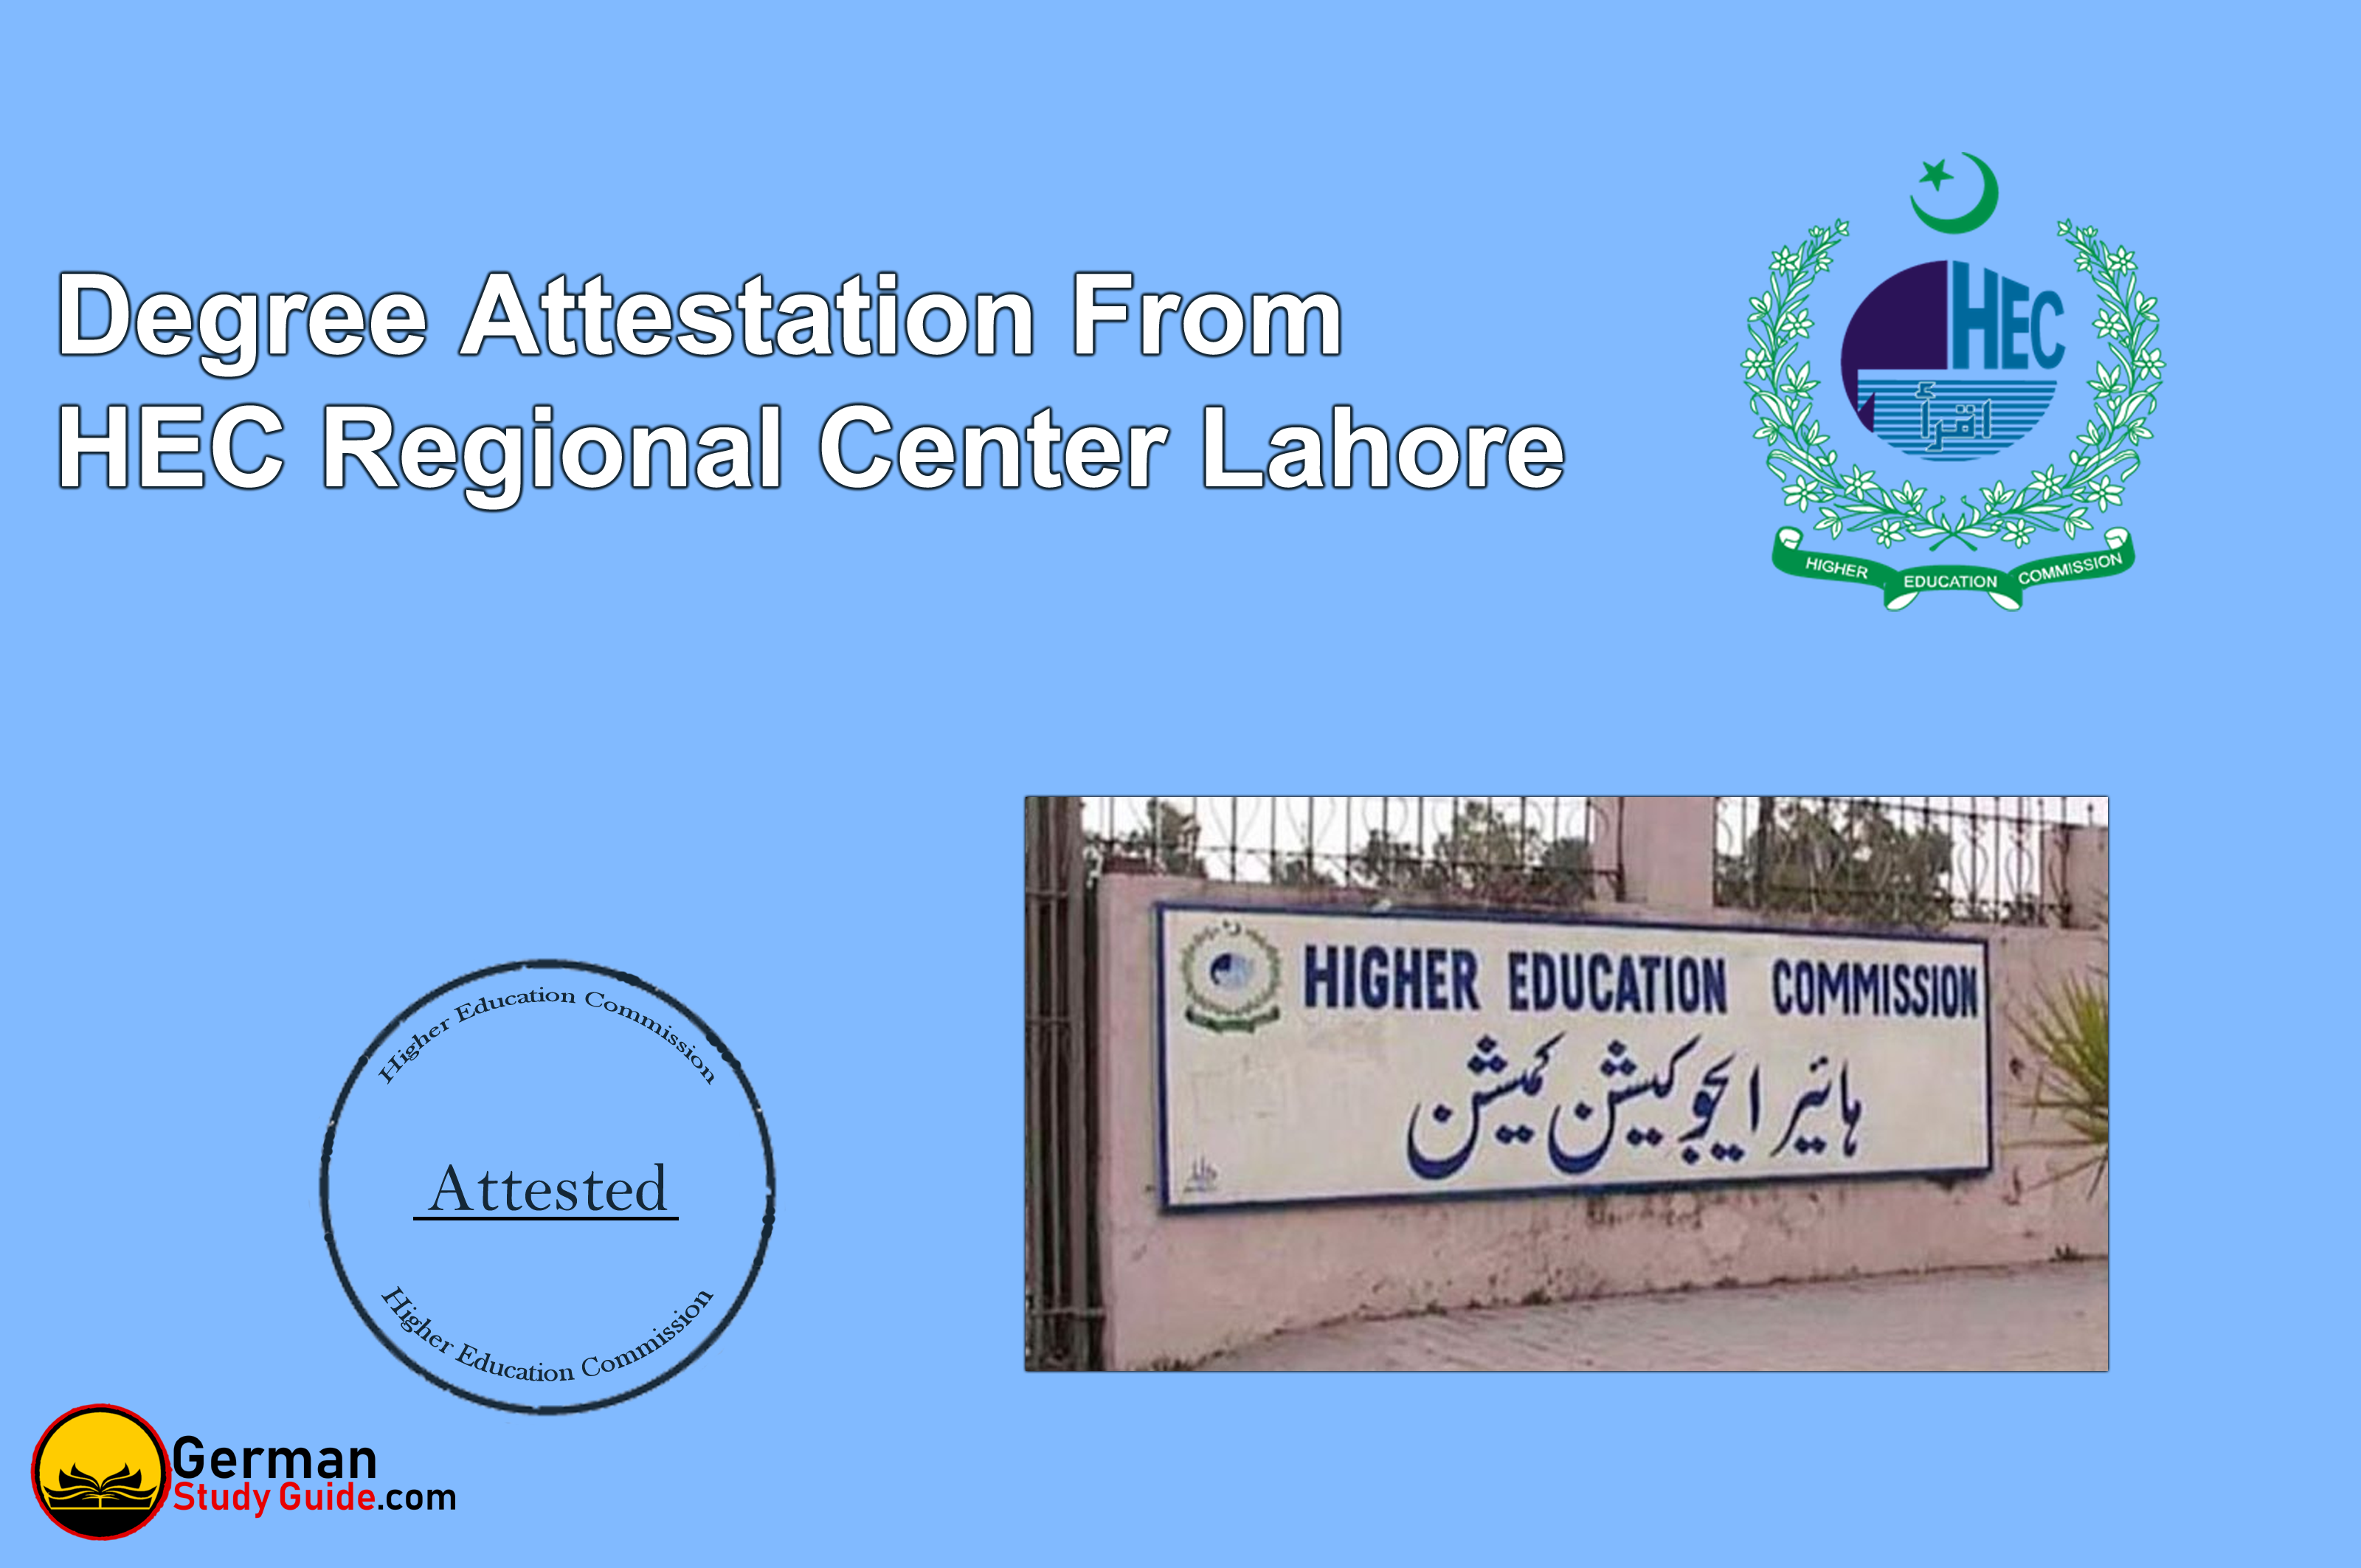 Degree attestation from HEC Regional Center Lahore